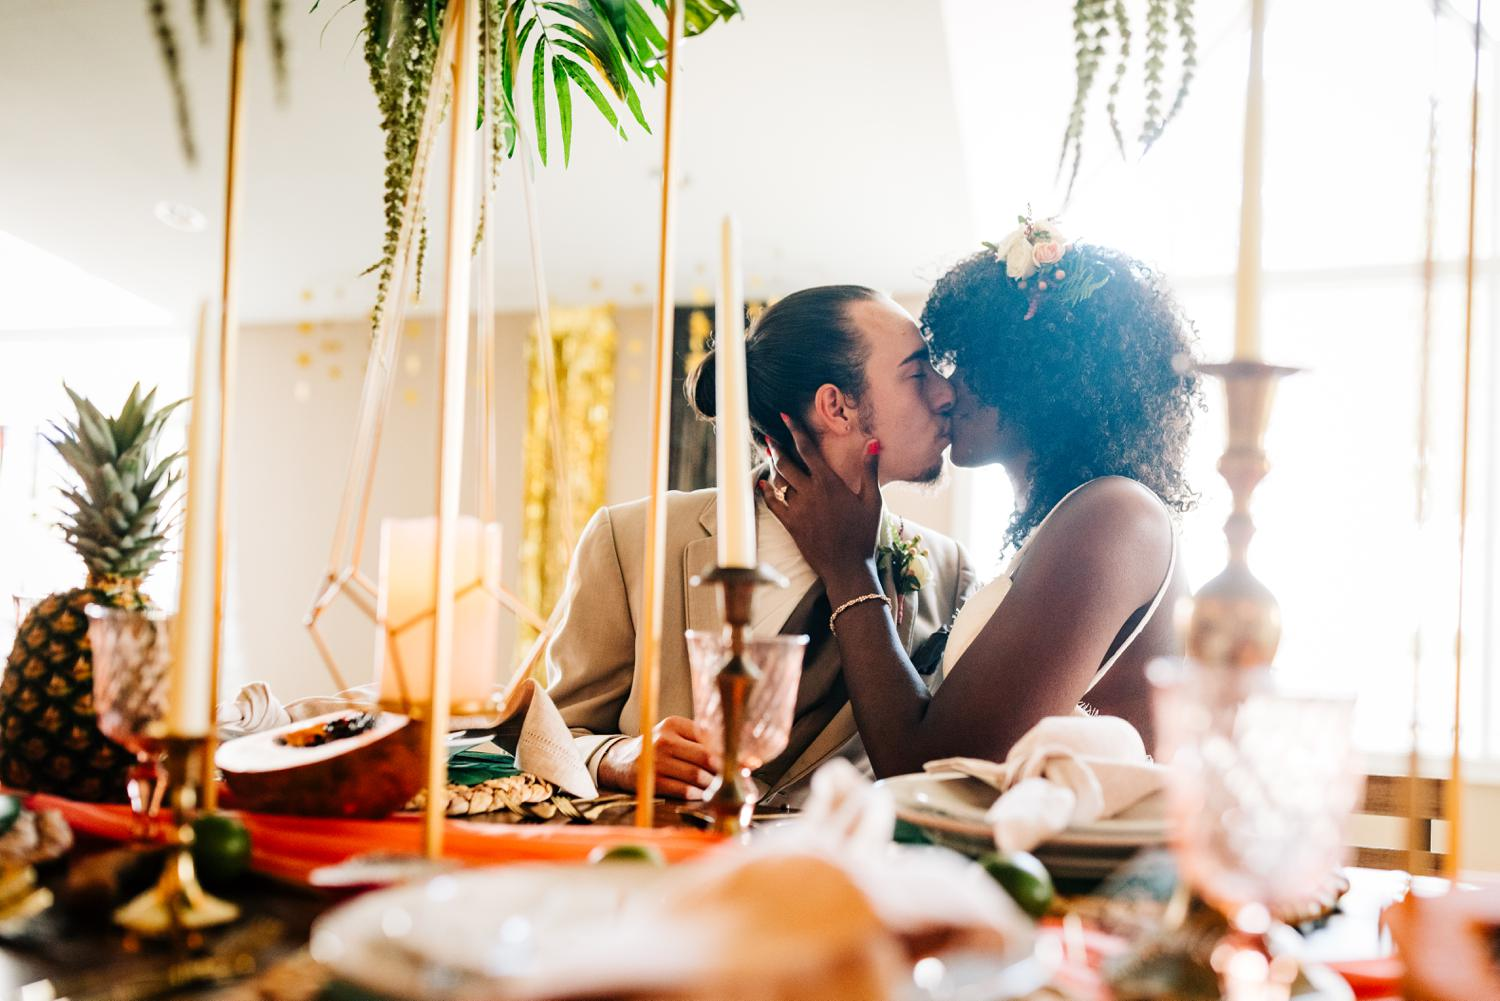 Bride and groom kiss at elaborate, colorful table in Albuquerque wedding